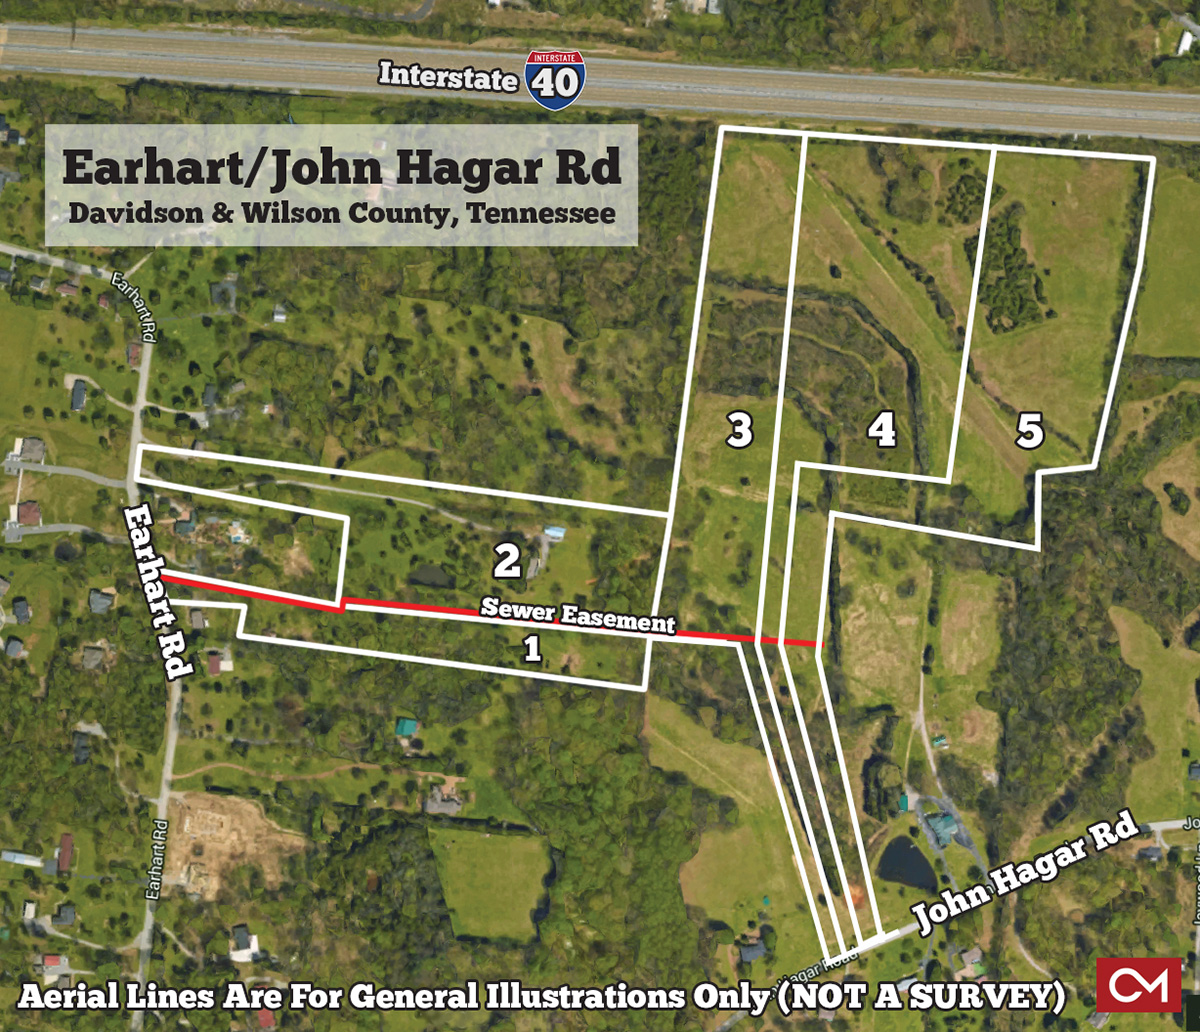 Land, For Sale, Nashville, Interstate 40, Davidson, Wilson, County, Tennessee, Hermitage, Dan, Liles, Farm, John, Hagar, Earhart, Road, Comas, Montgomery, Real Estate, Auction, Acres, Tract, House, Home